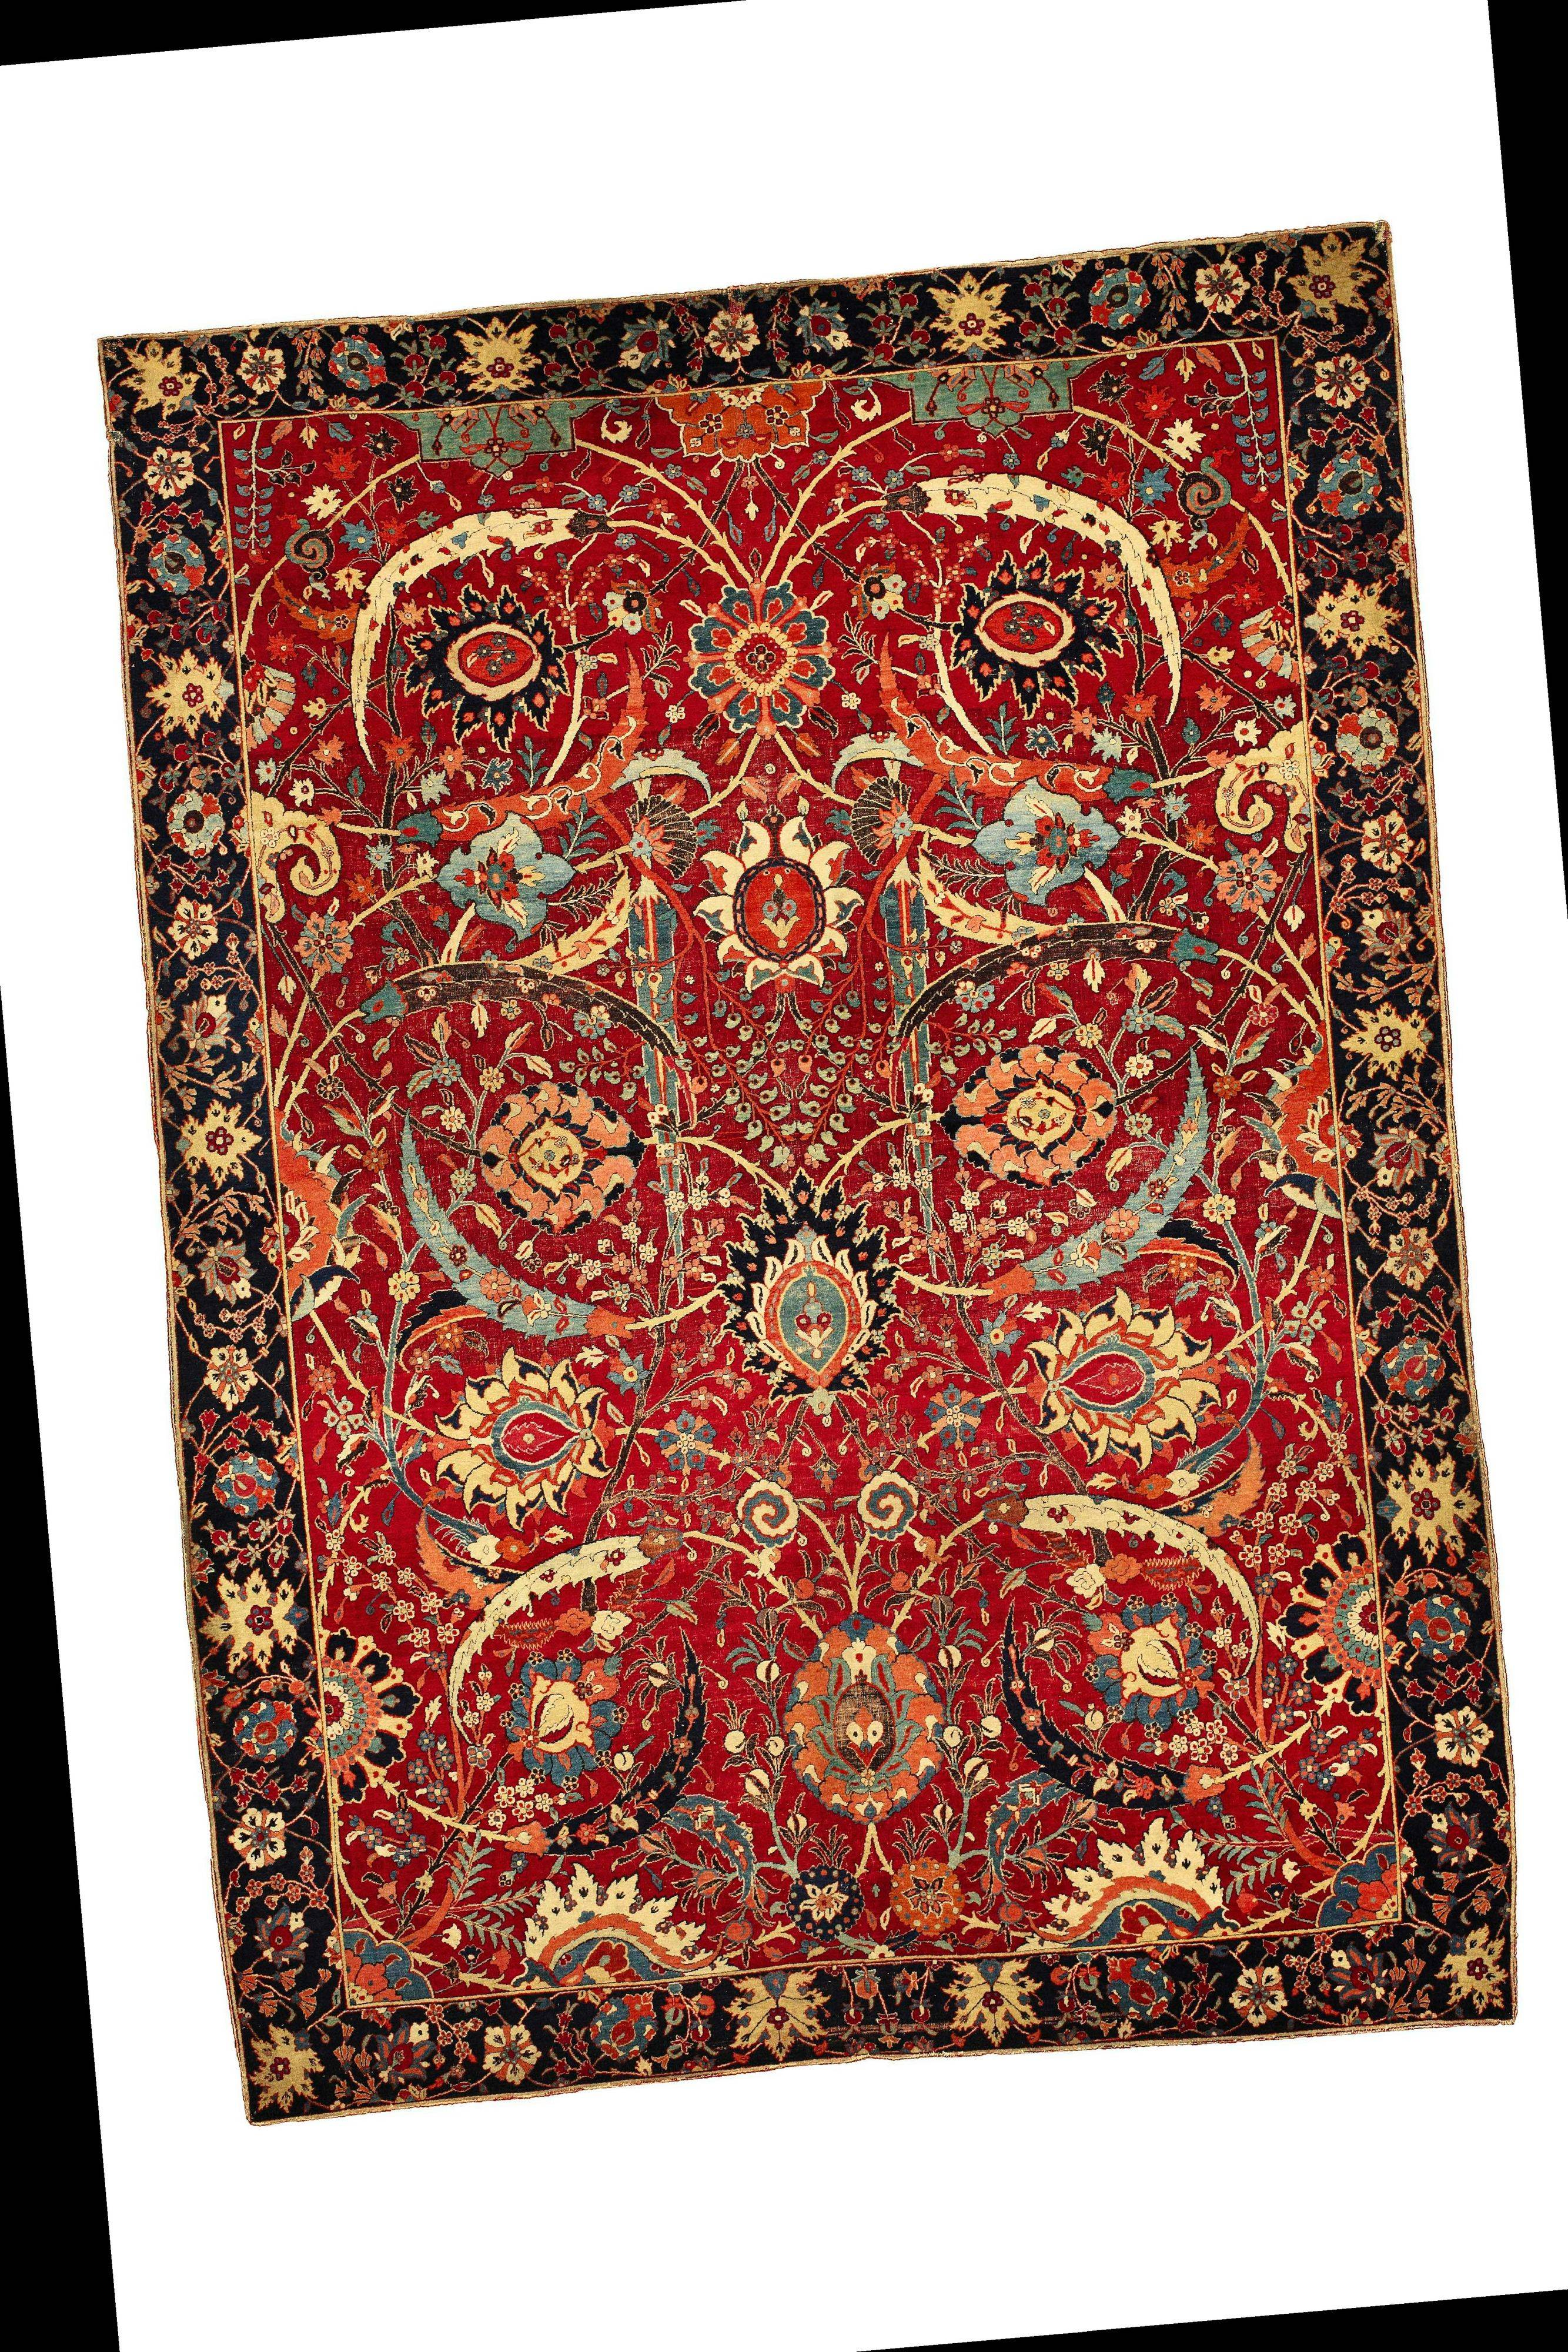 The 17th century Clark Sickle-Leaf carpet, about 8 feet 9 inches by 6 feet 5 inches, probably from Kirman, South Persia, was sold by the Corcoran Gallery of Art to an anonymous buyer. The stunned crowd at Sotheby's in New York burst into a rare round of applause when the museum-quality Persian carpet reached a record-setting price of $33.76 million in June.